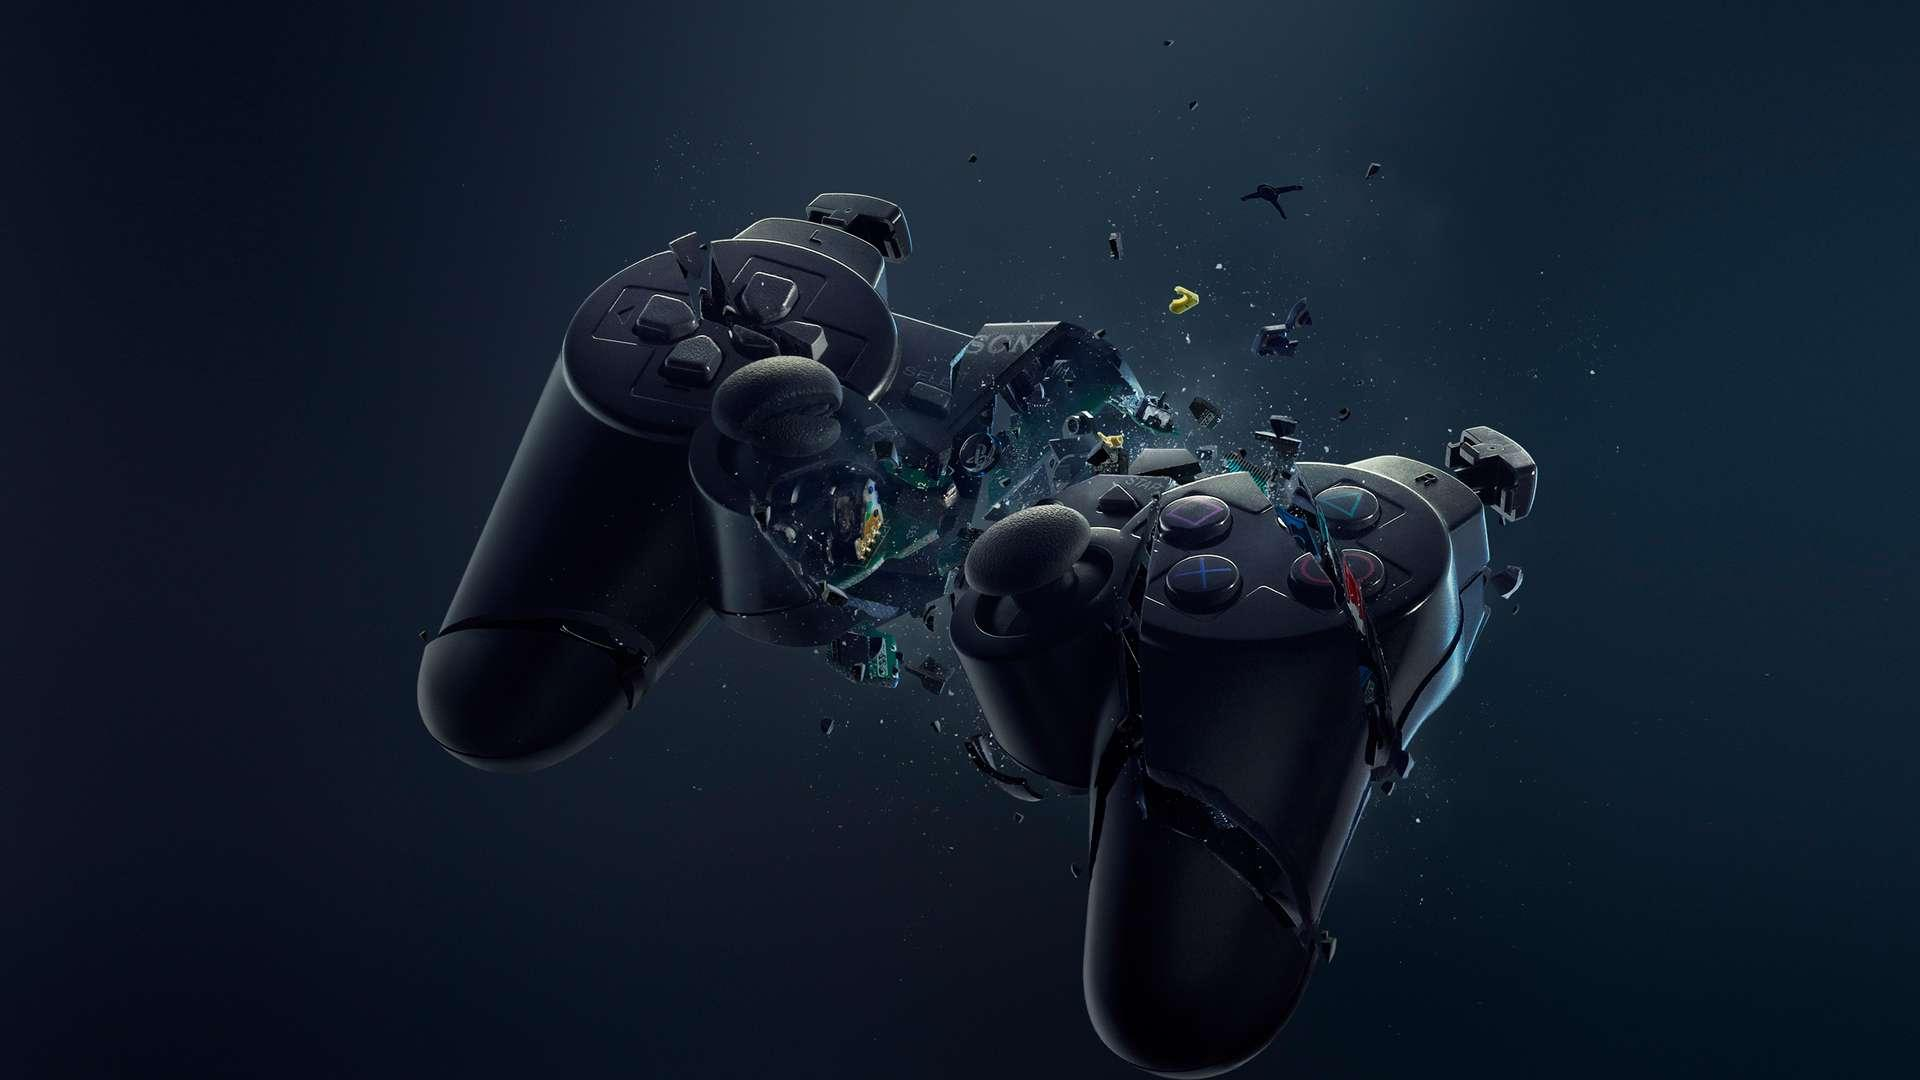 playstation 4 controller - wallpaper image - 8th generation gamers